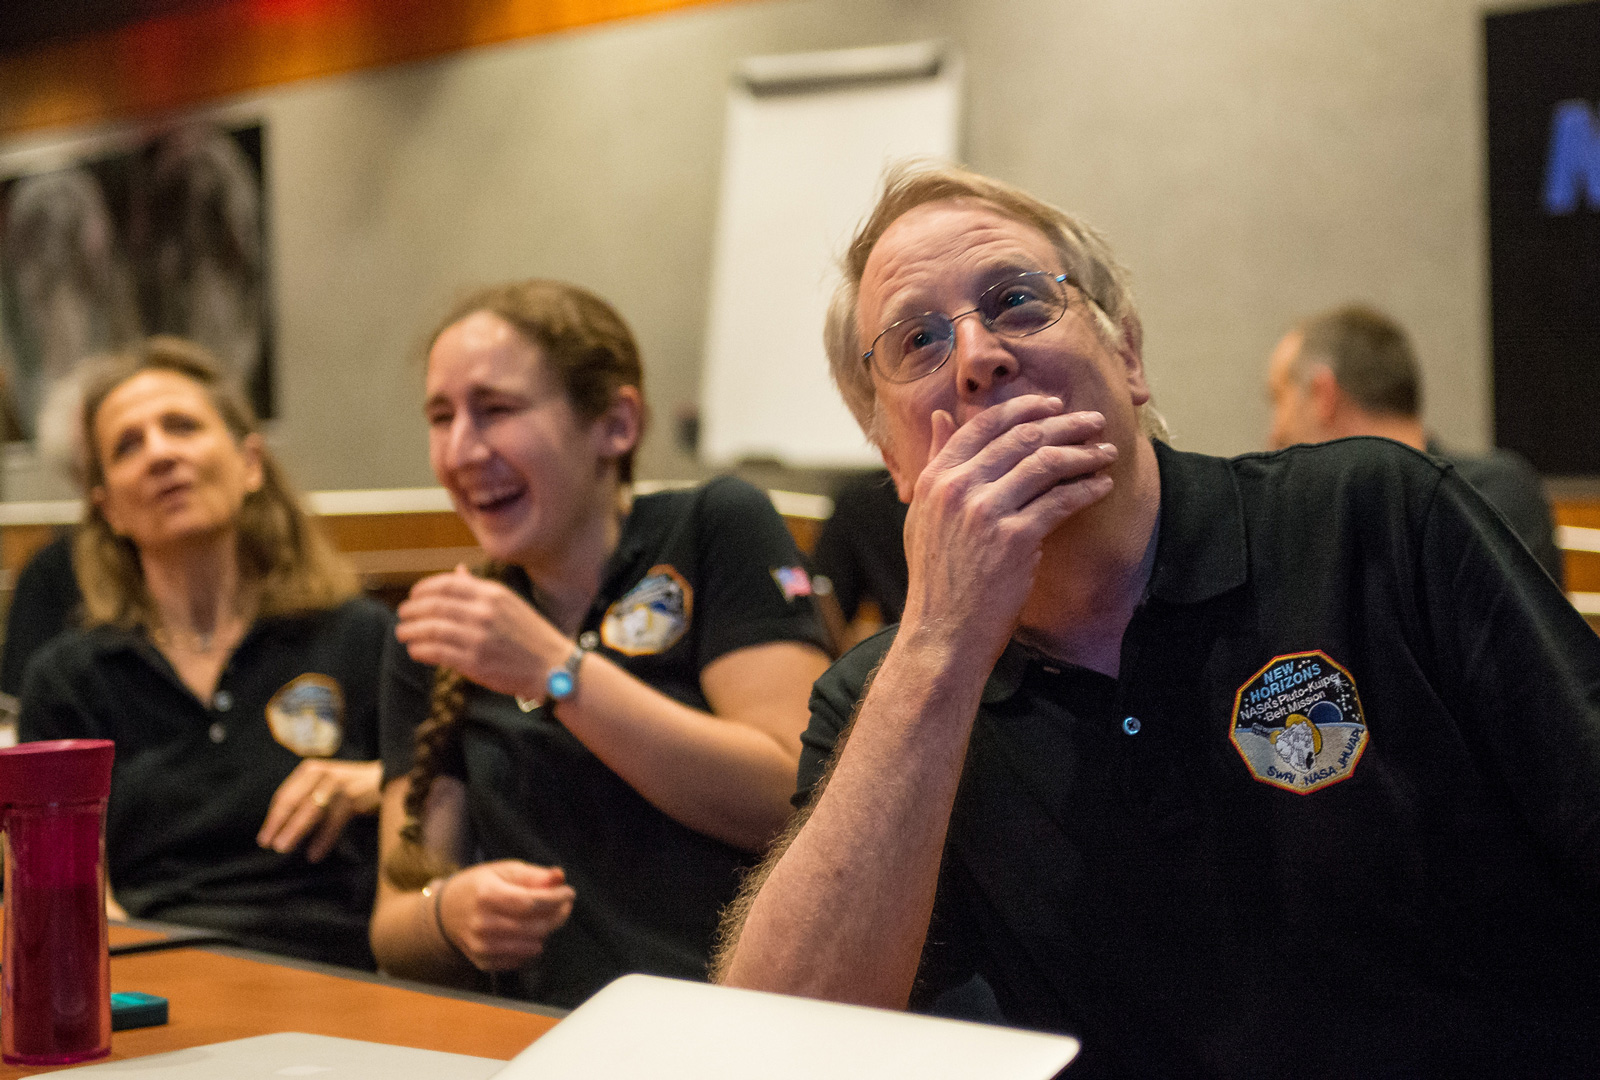 Two women and a man react with joy at seeing the first images of Pluto.